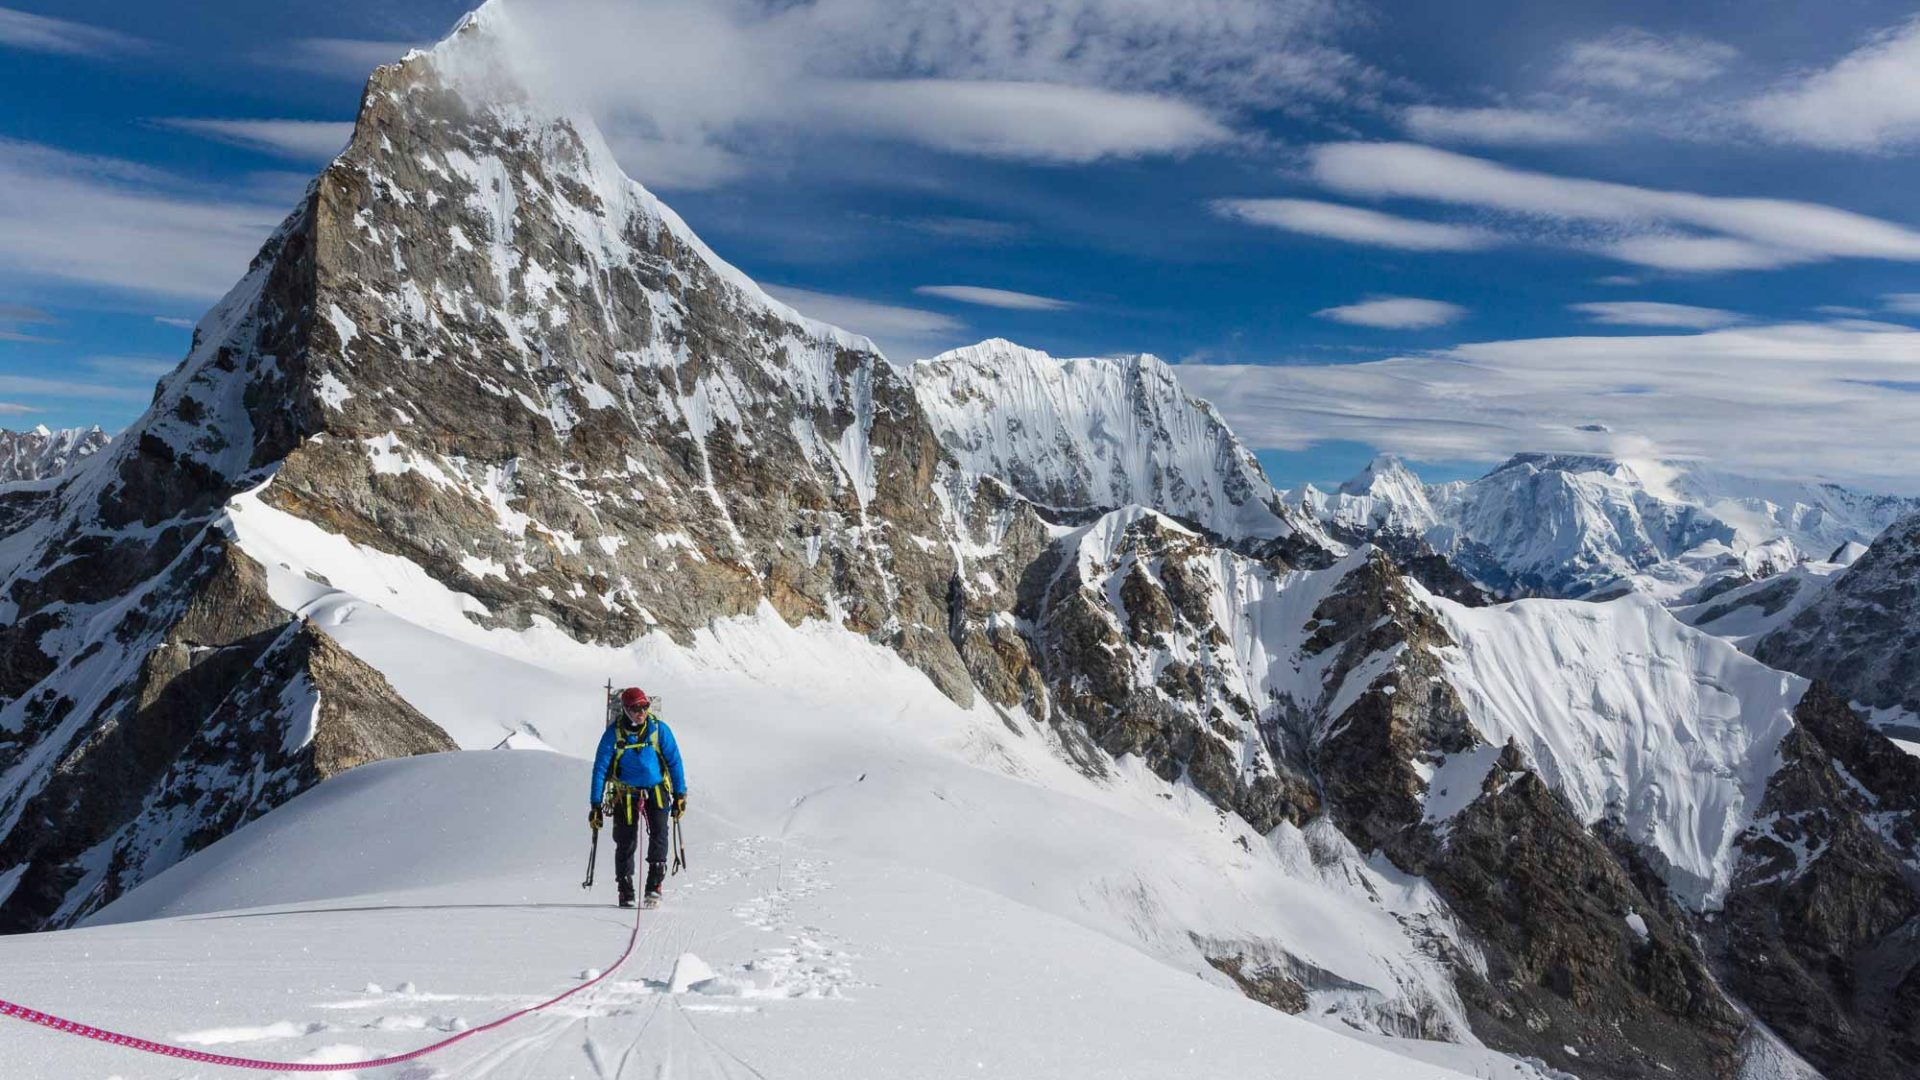 Larsen and Ryan Waters became the first to ascend the peak of Nepal's Jabou Ri, a Himalayan peak in an area only recently opened to climbers.